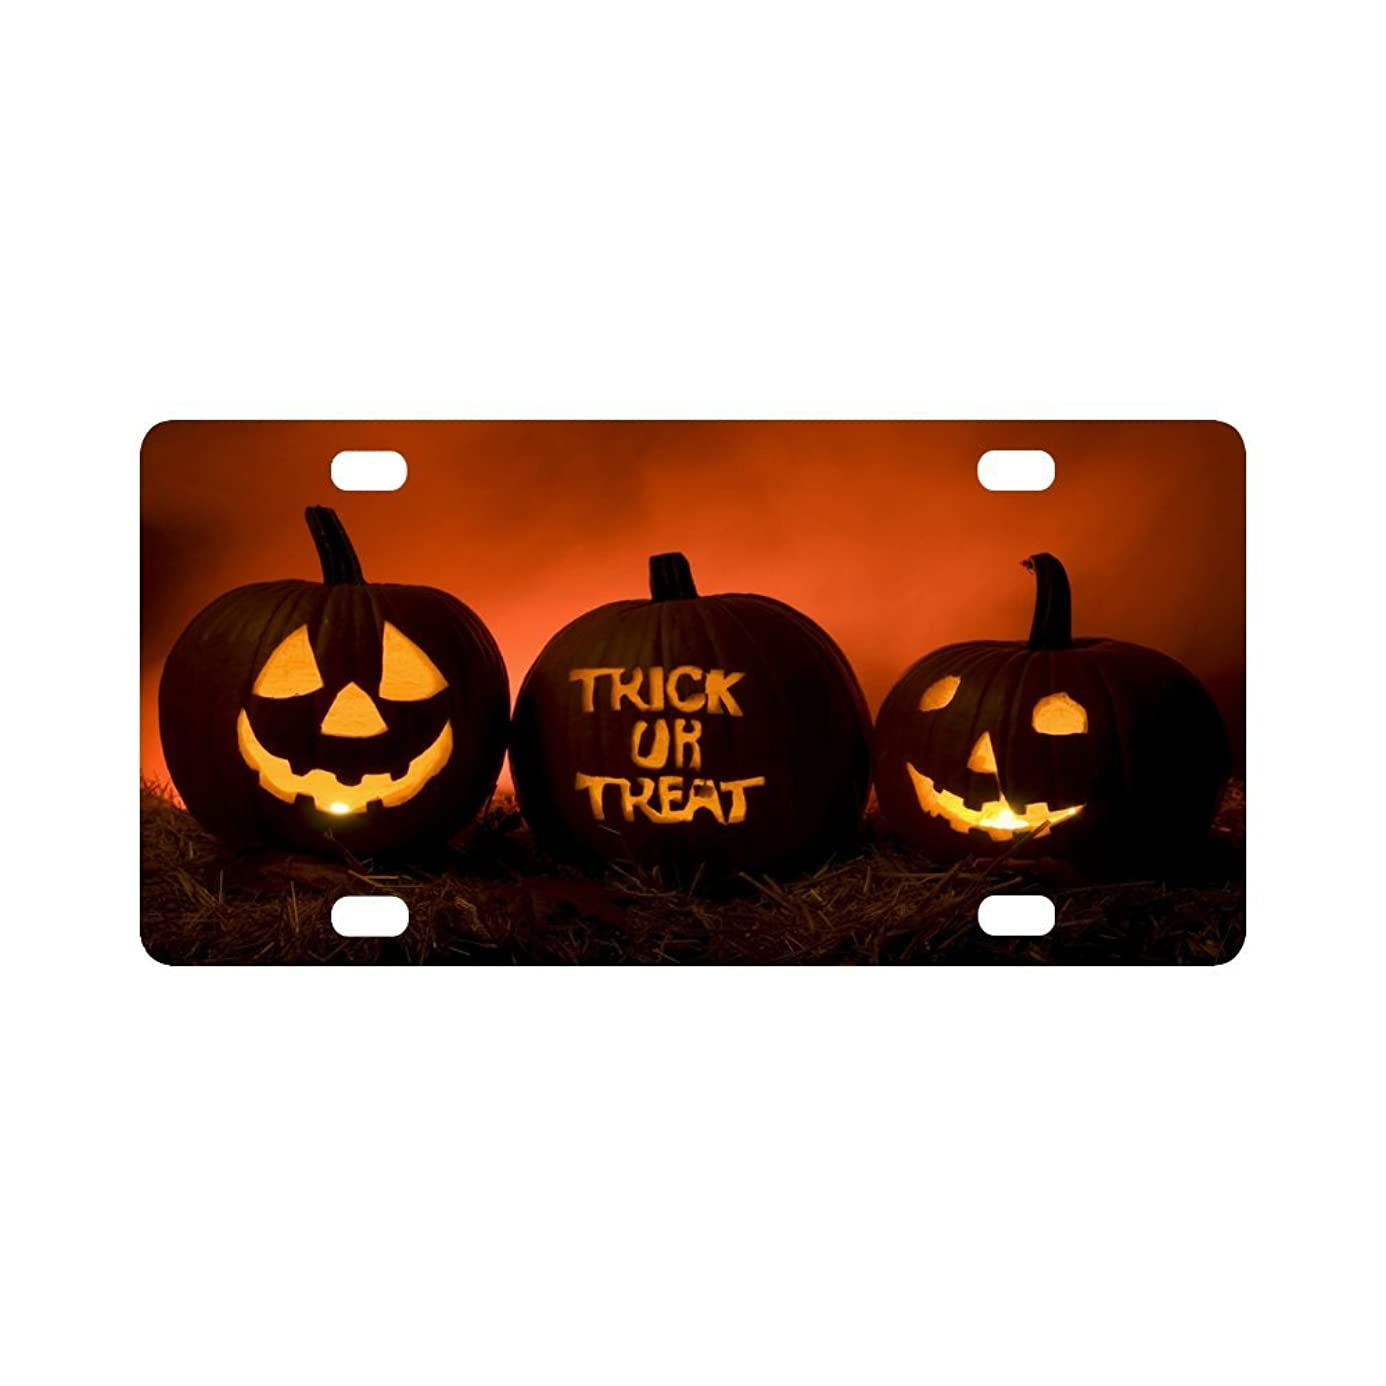 Michalmkeyes The License Plate Covers for Car happy halloween 11.8